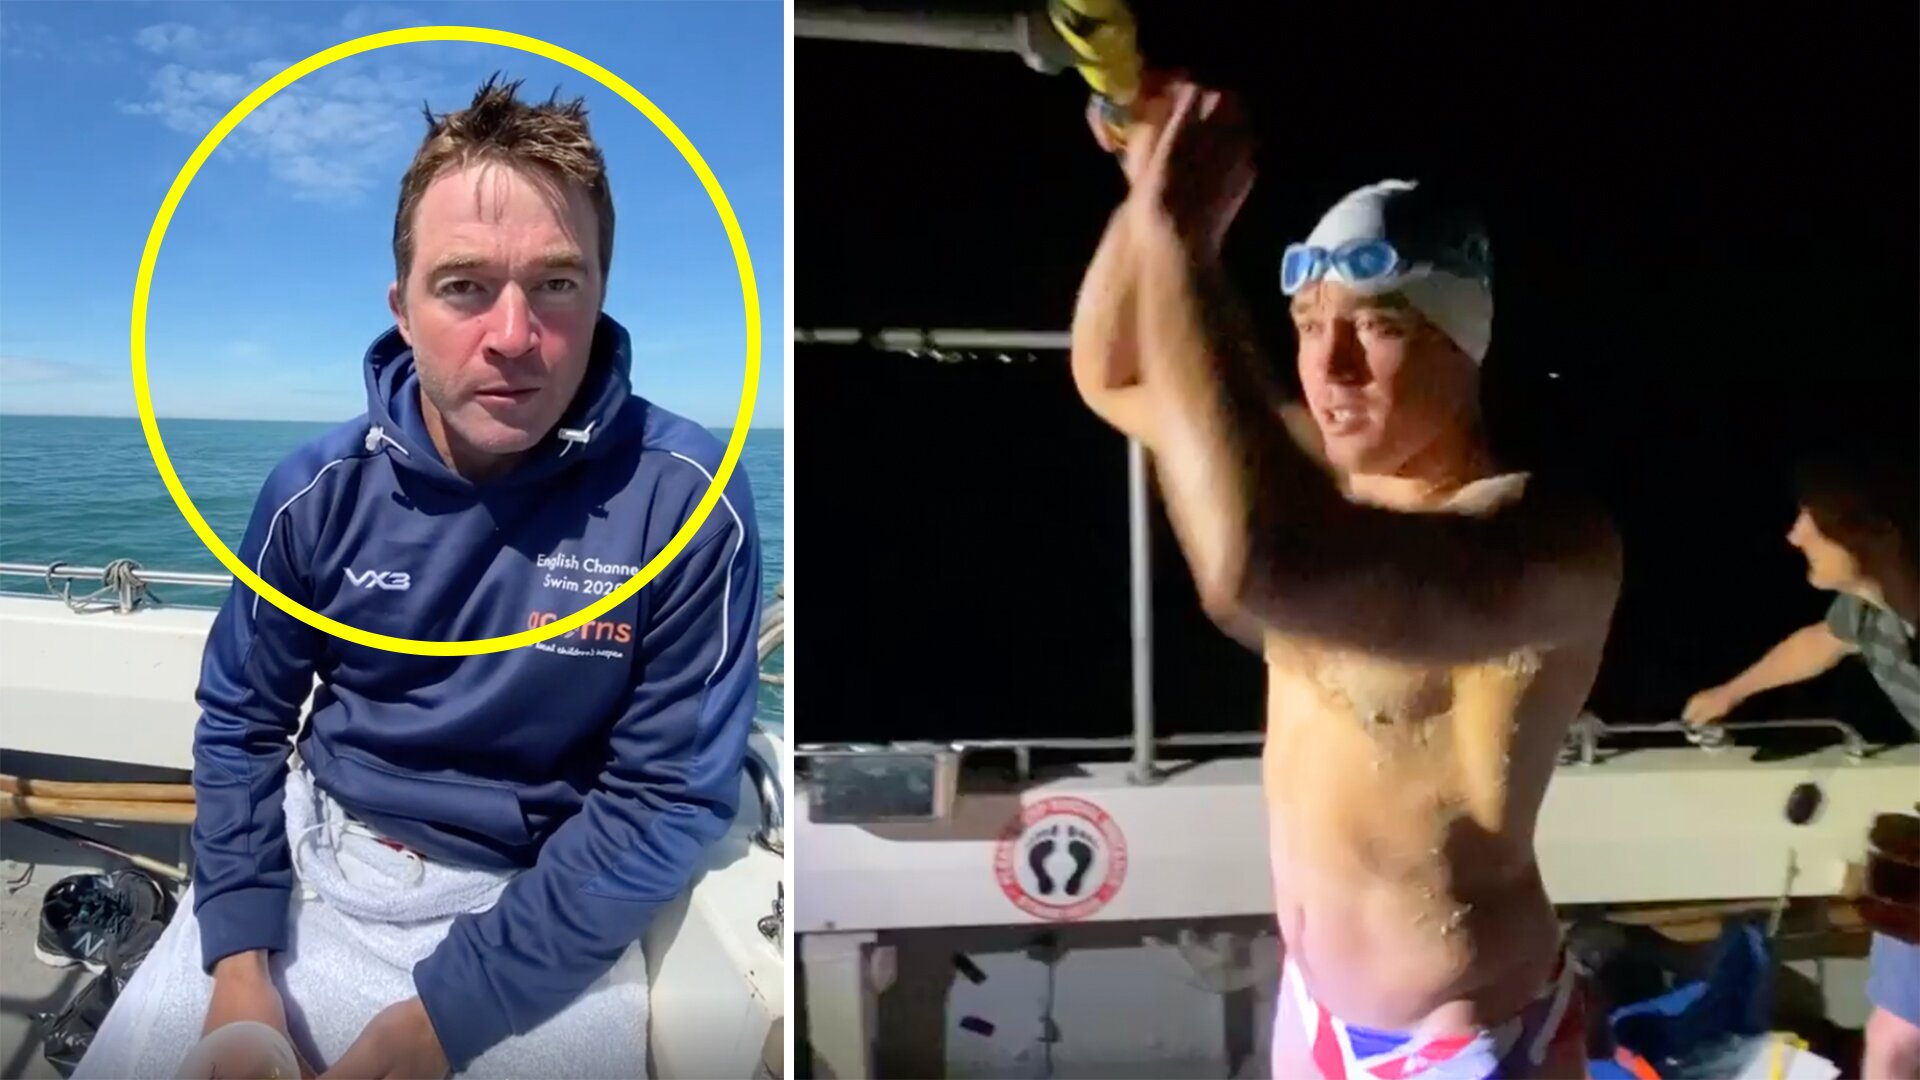 Rugby player reveals horror channel swim in disturbing new video